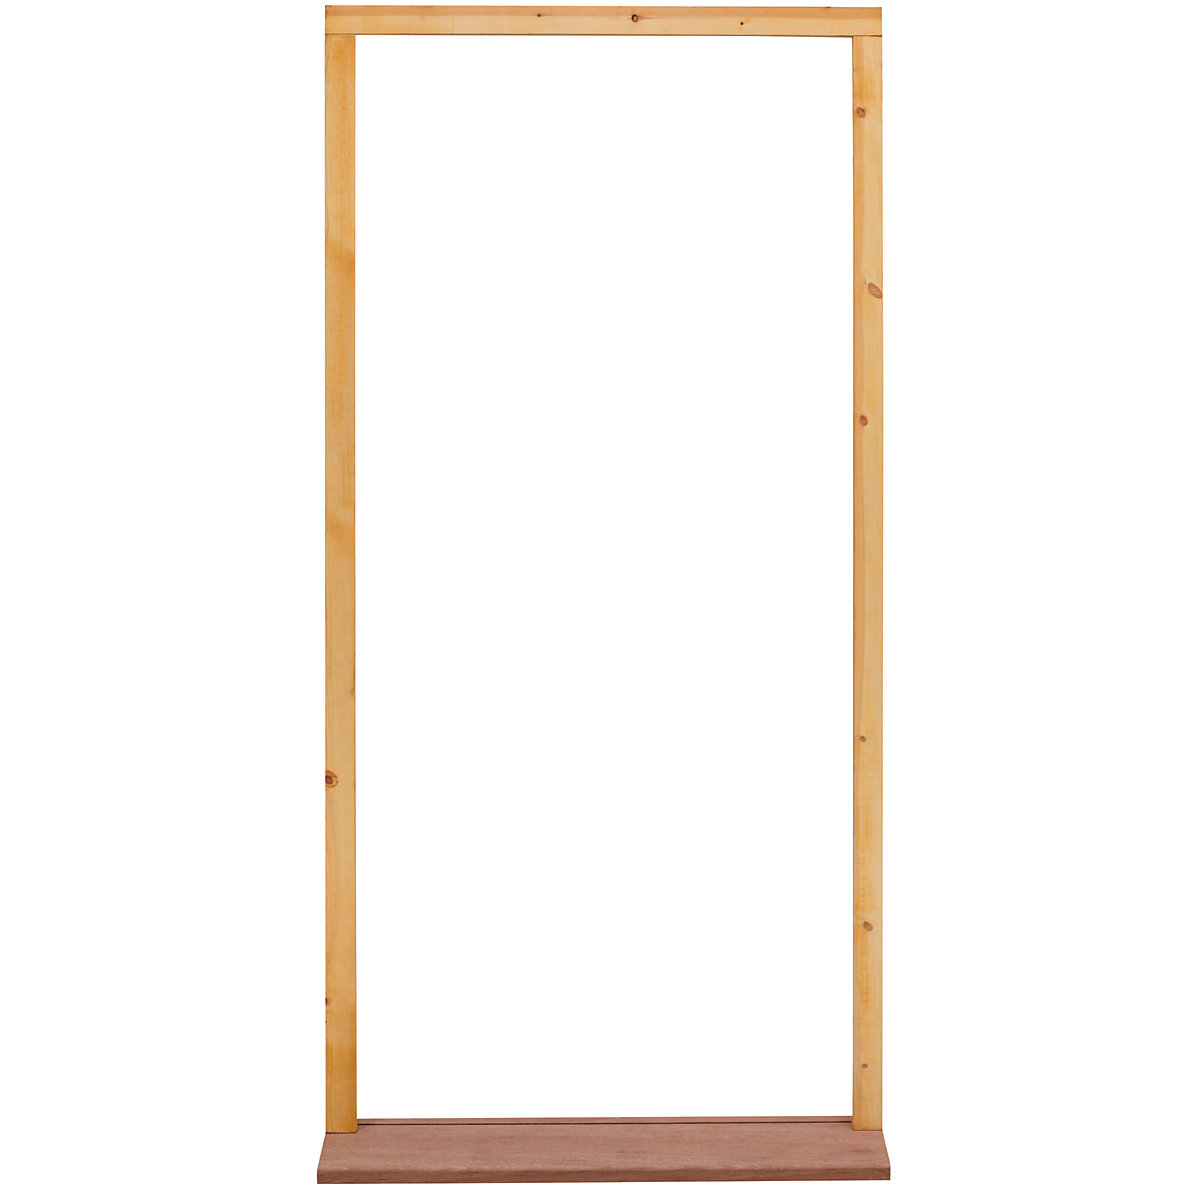 External softwood door frame to suit - 2\'9x6\'6 door | Travis Perkins